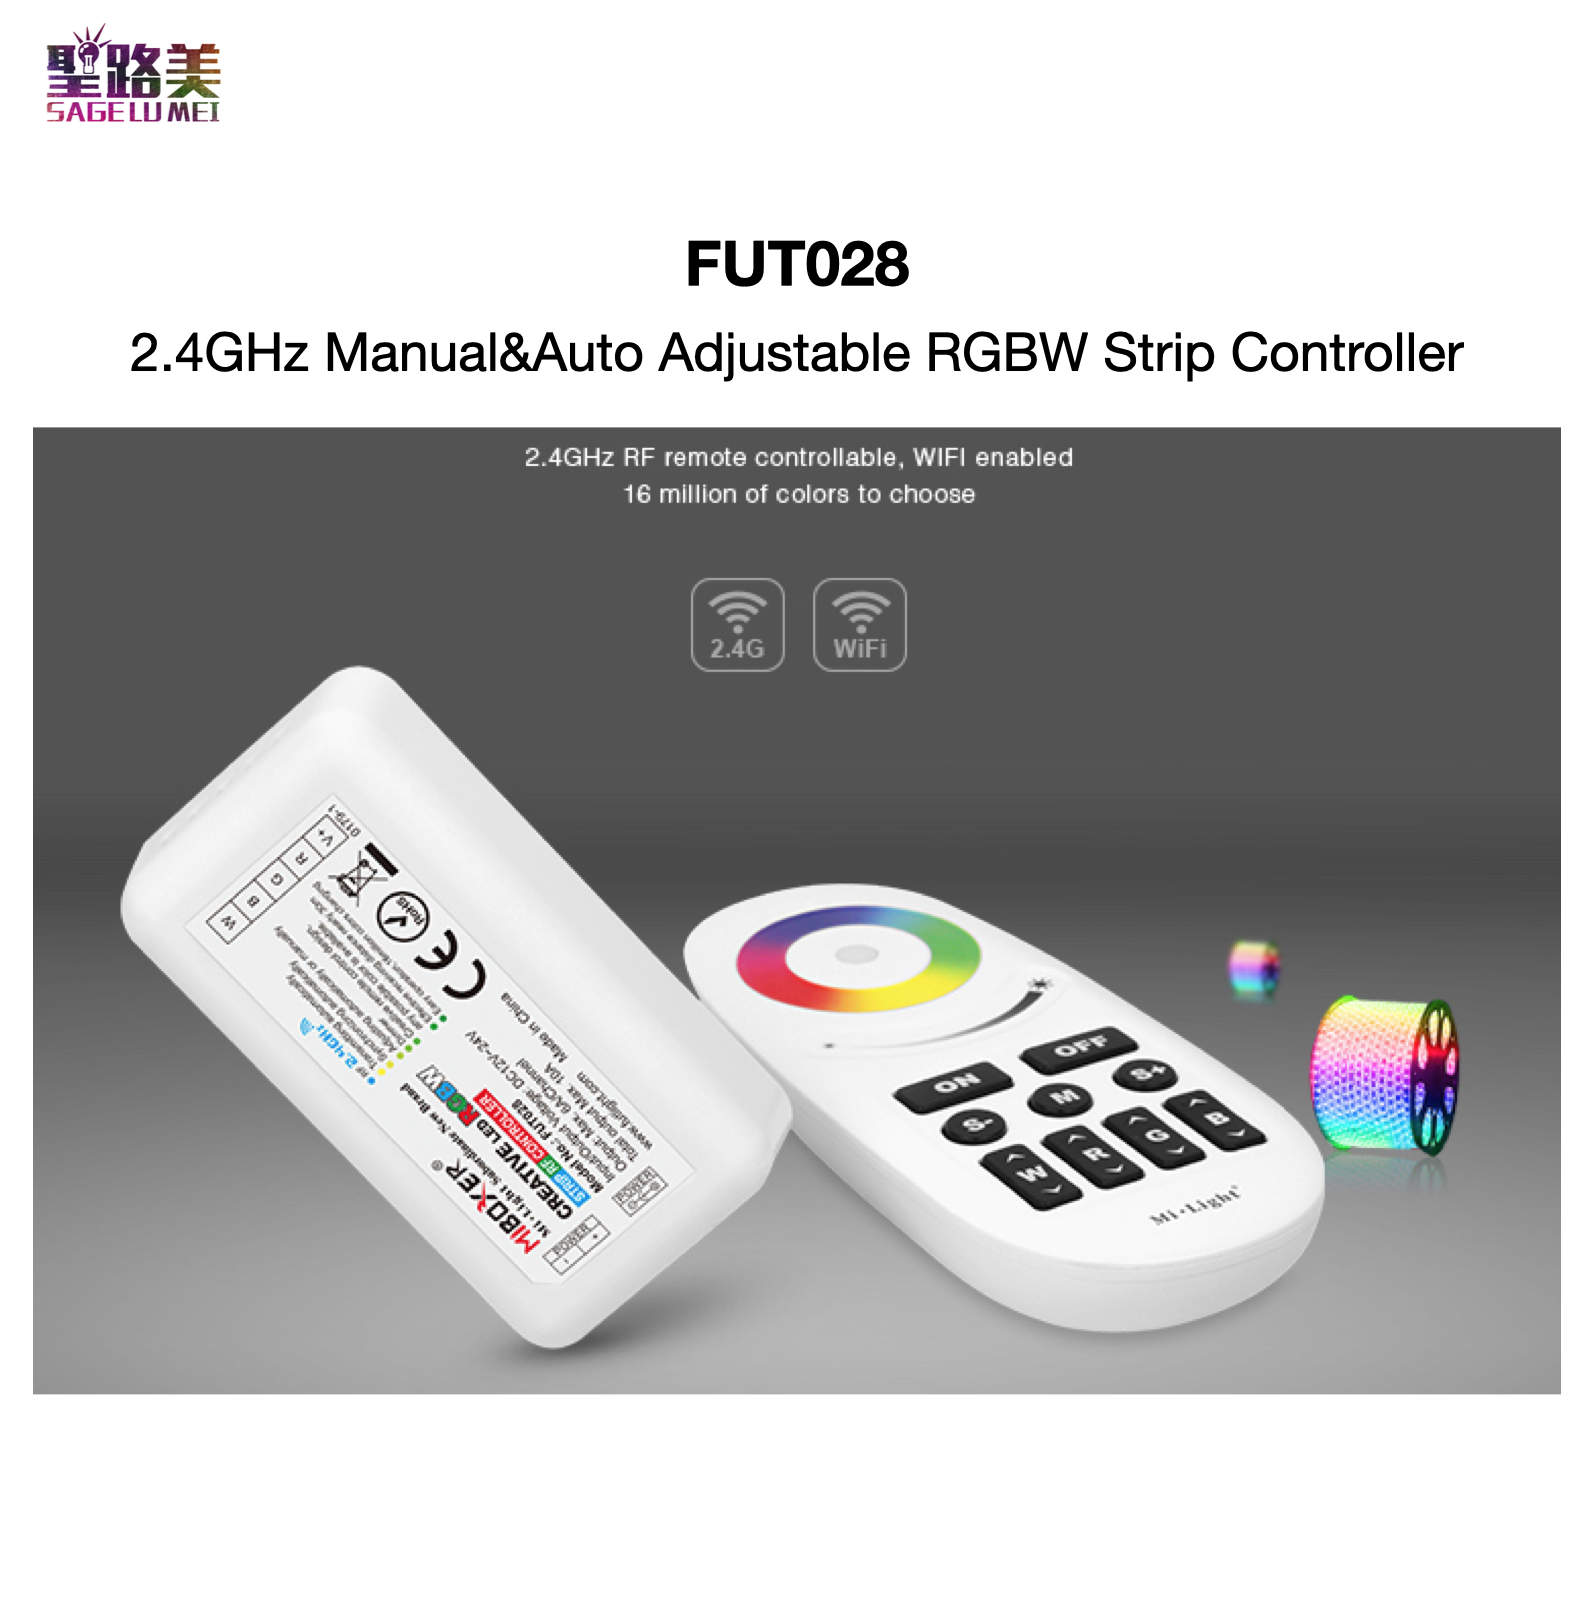 <font><b>FUT028</b></font> 2.4GHz Manual & Auto Adjustable RGBW Strip Controller 2.4GHz RF for RGBW LED Strip Lights / LED Module MiBOXER Mi-Light image